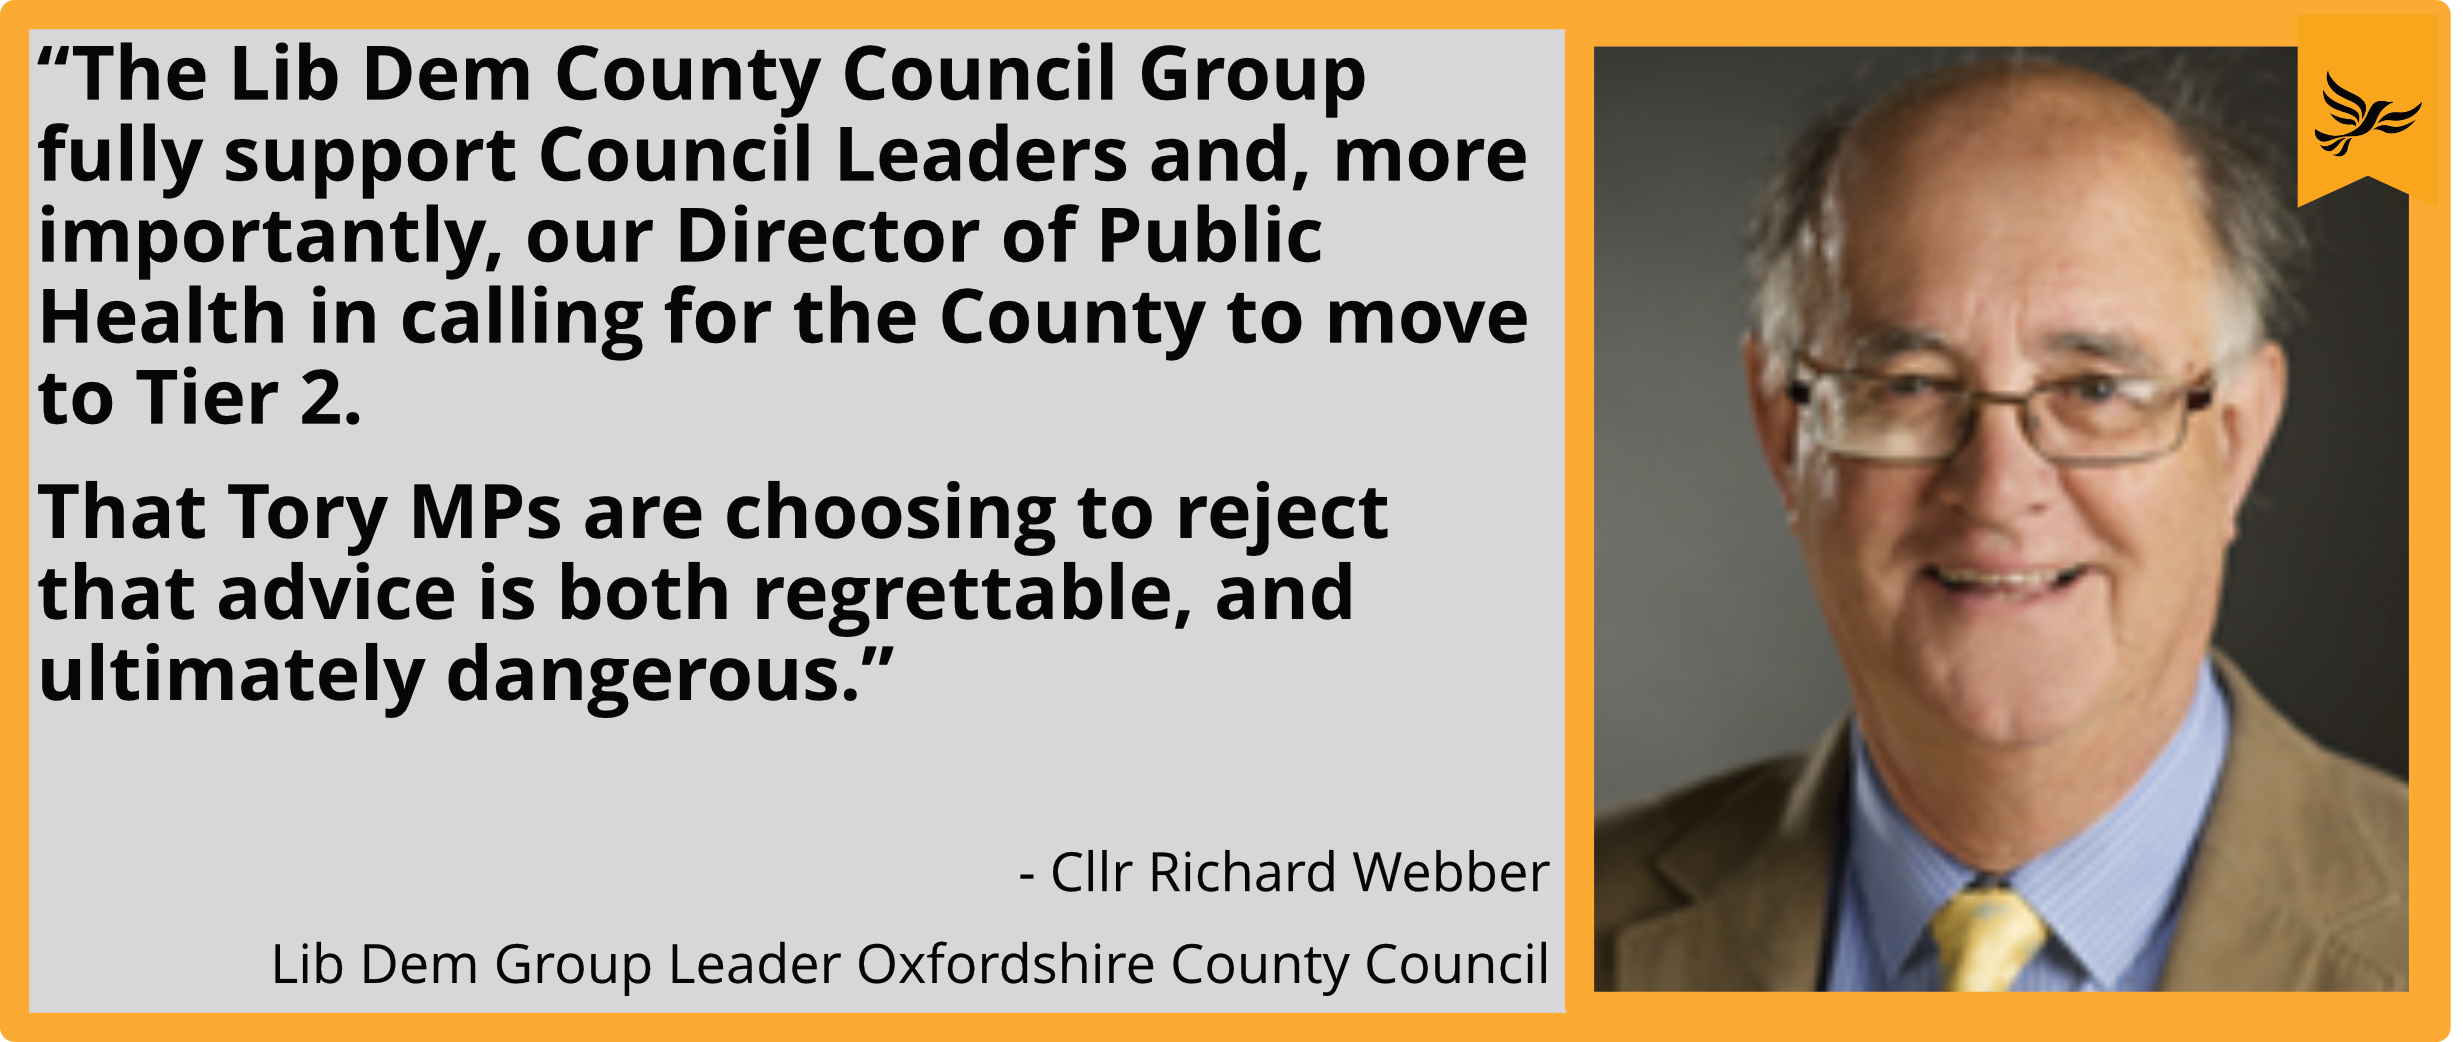 Key_Cllr Richard Webber